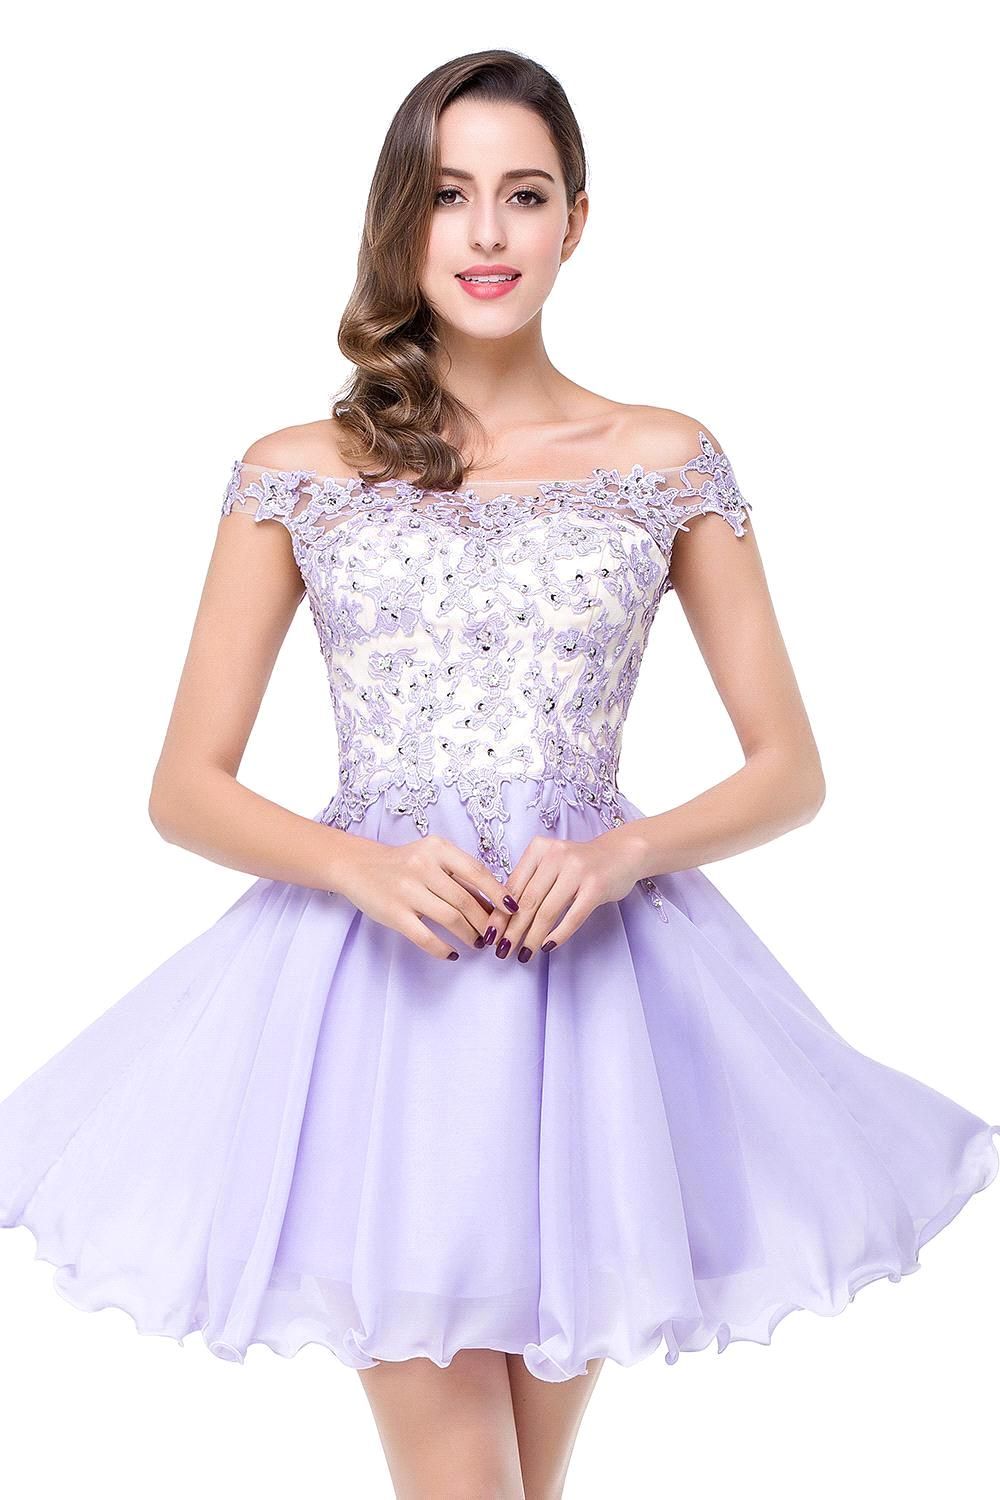 Prom Dresses For Eighth Graders - Plus Size Prom Dresses